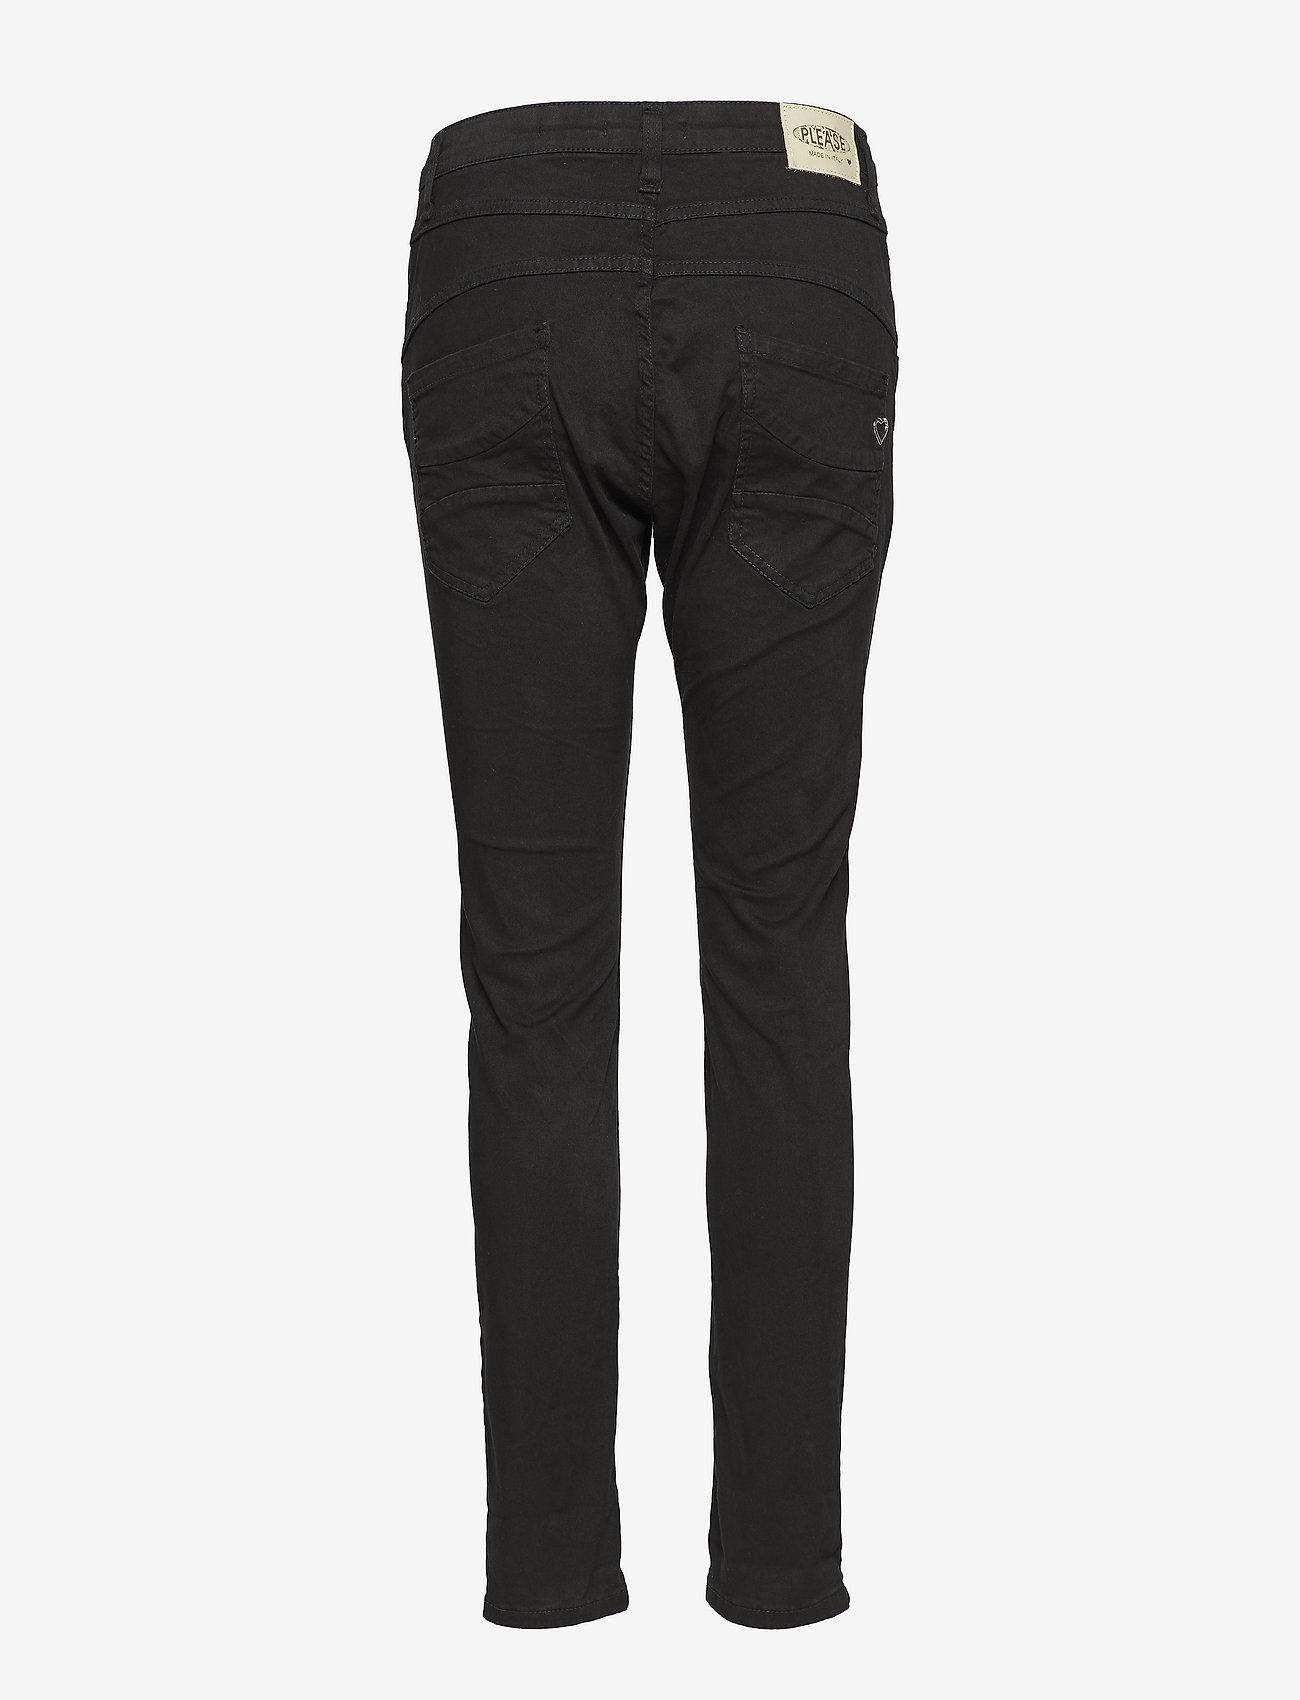 Please Jeans - Classic Cotton Rose Dust - rette bukser - nero - 1